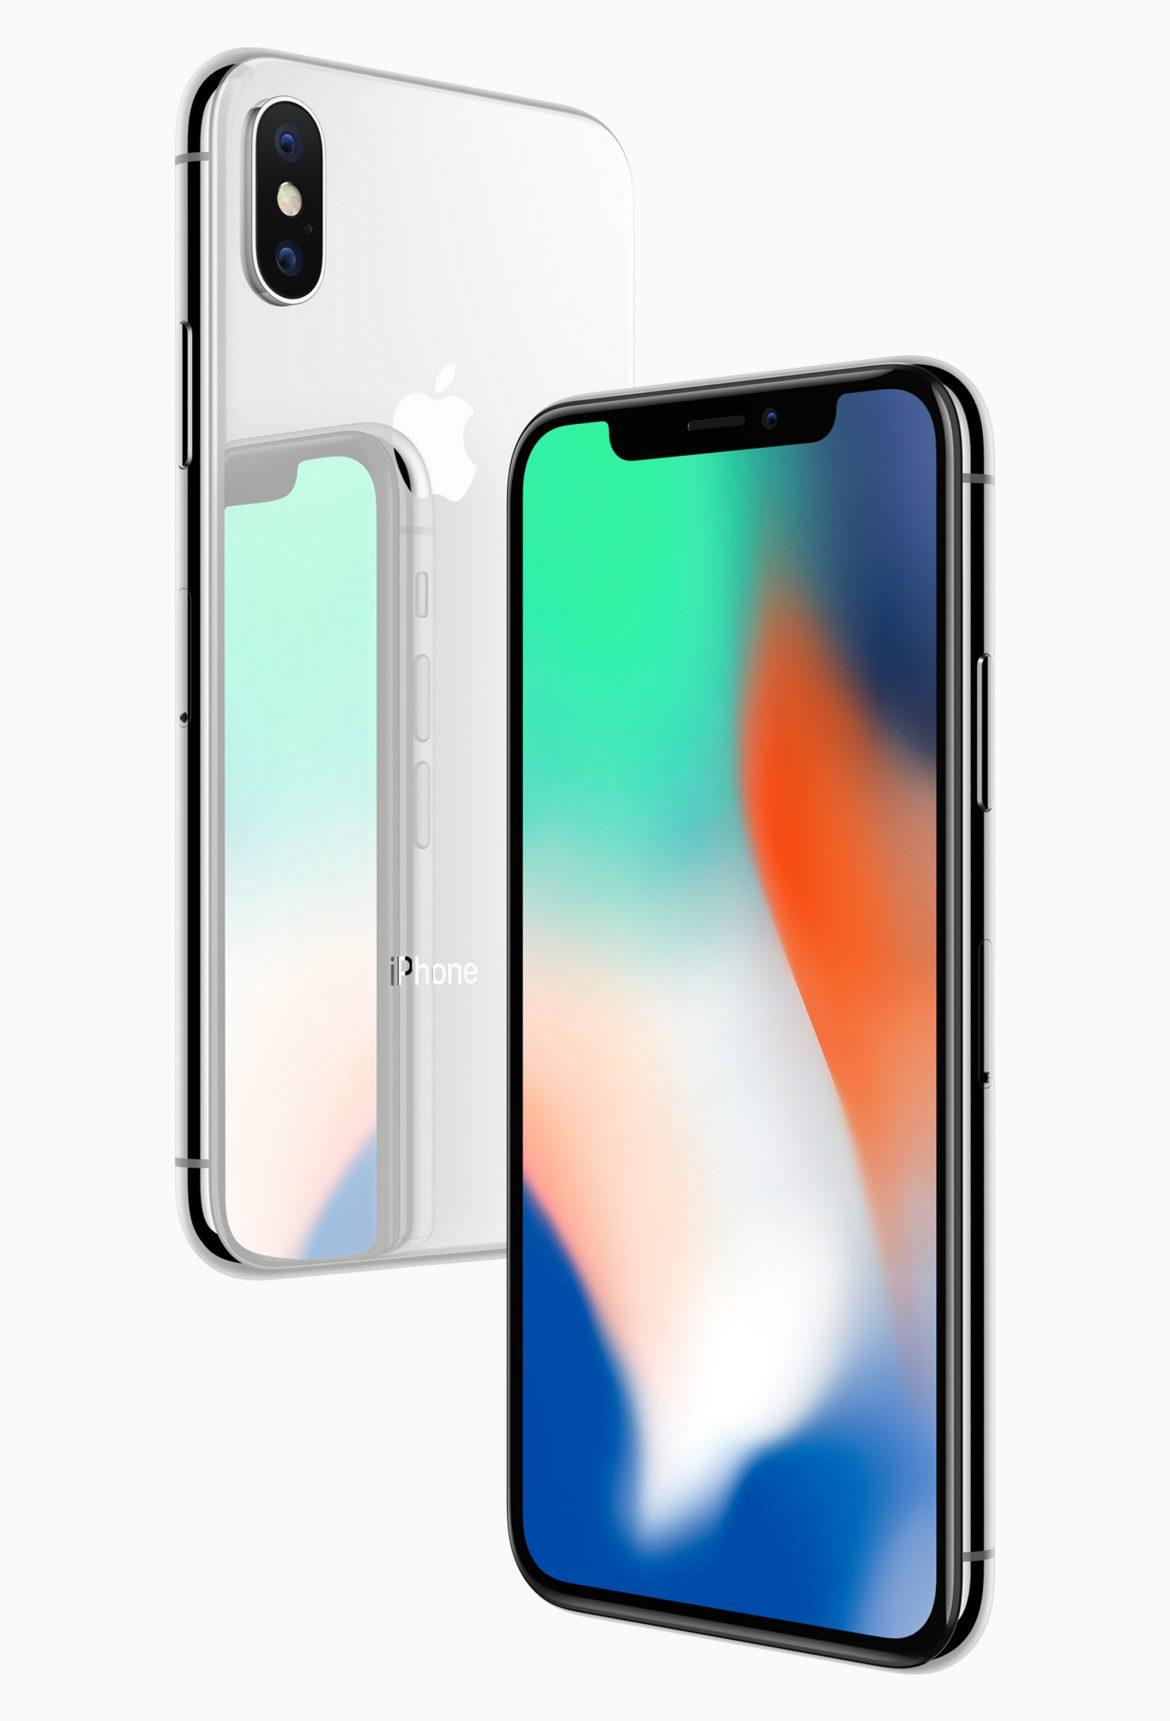 The iPhone X, an all-glass design with a 5.8-inch Super Retina display. (Apple)